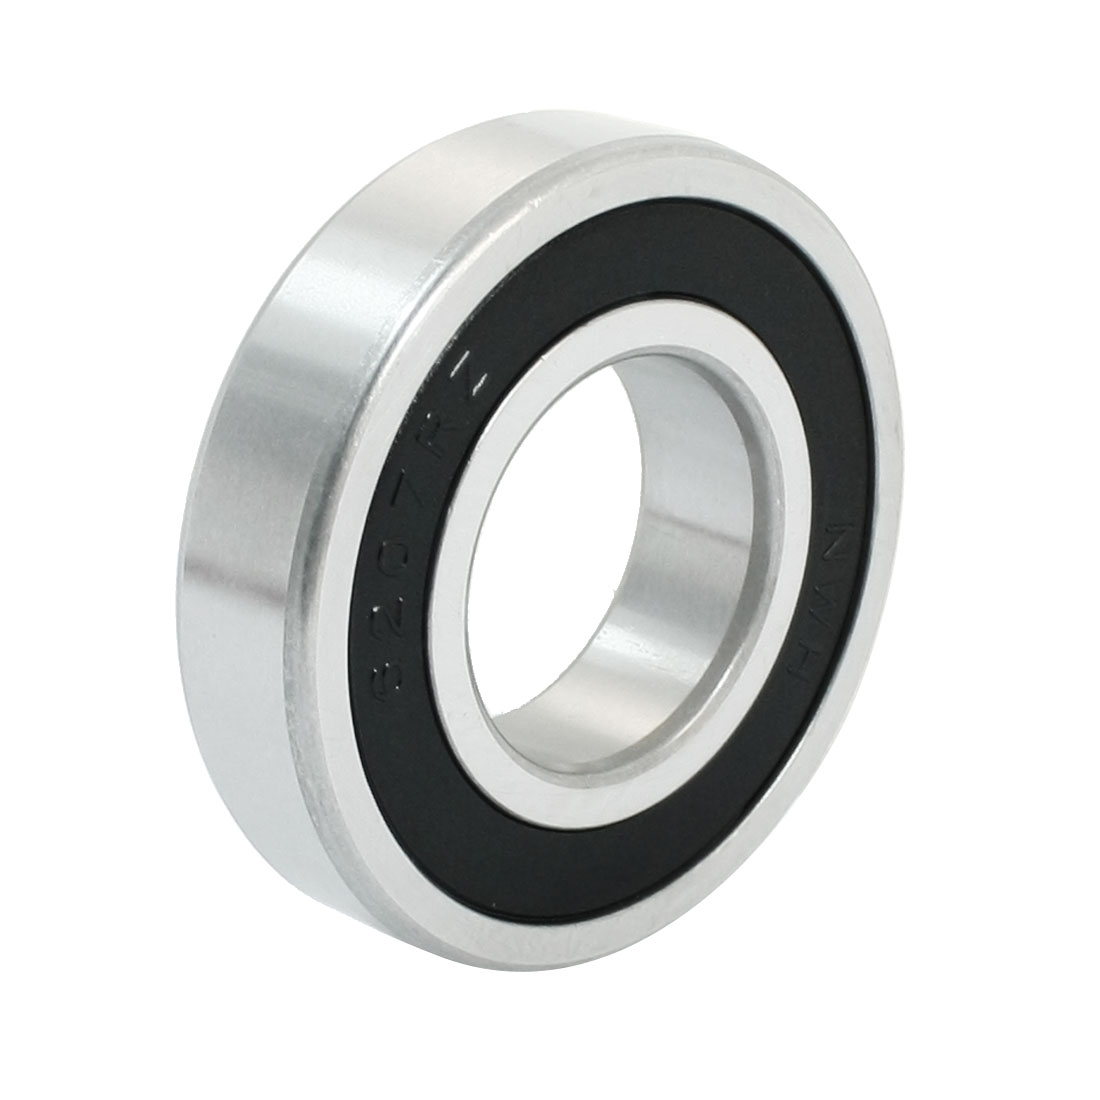 35mm x 72mm x 17mm Chrome Steel Sealed Deep Groove Ball Bearing 6207-2RS